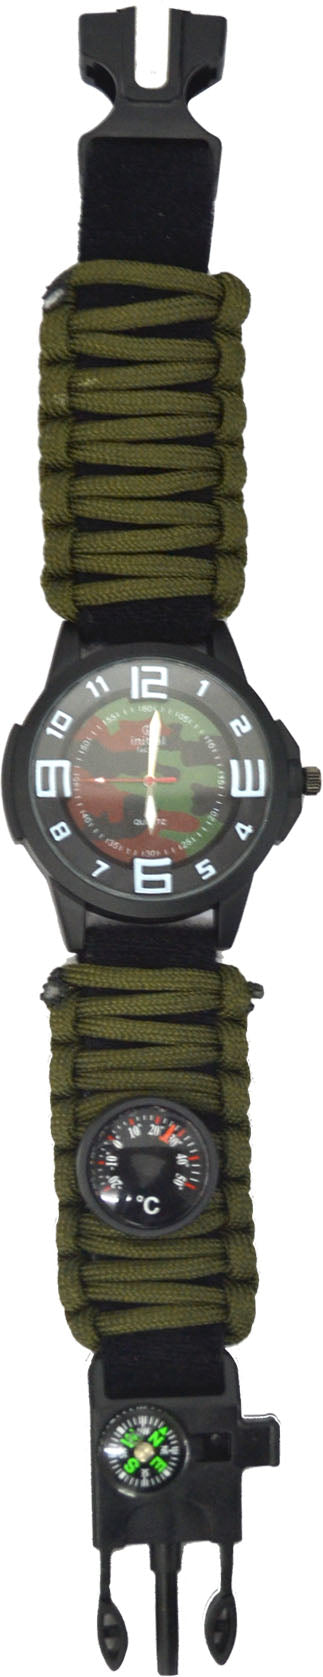 Initial Gents Army Watch